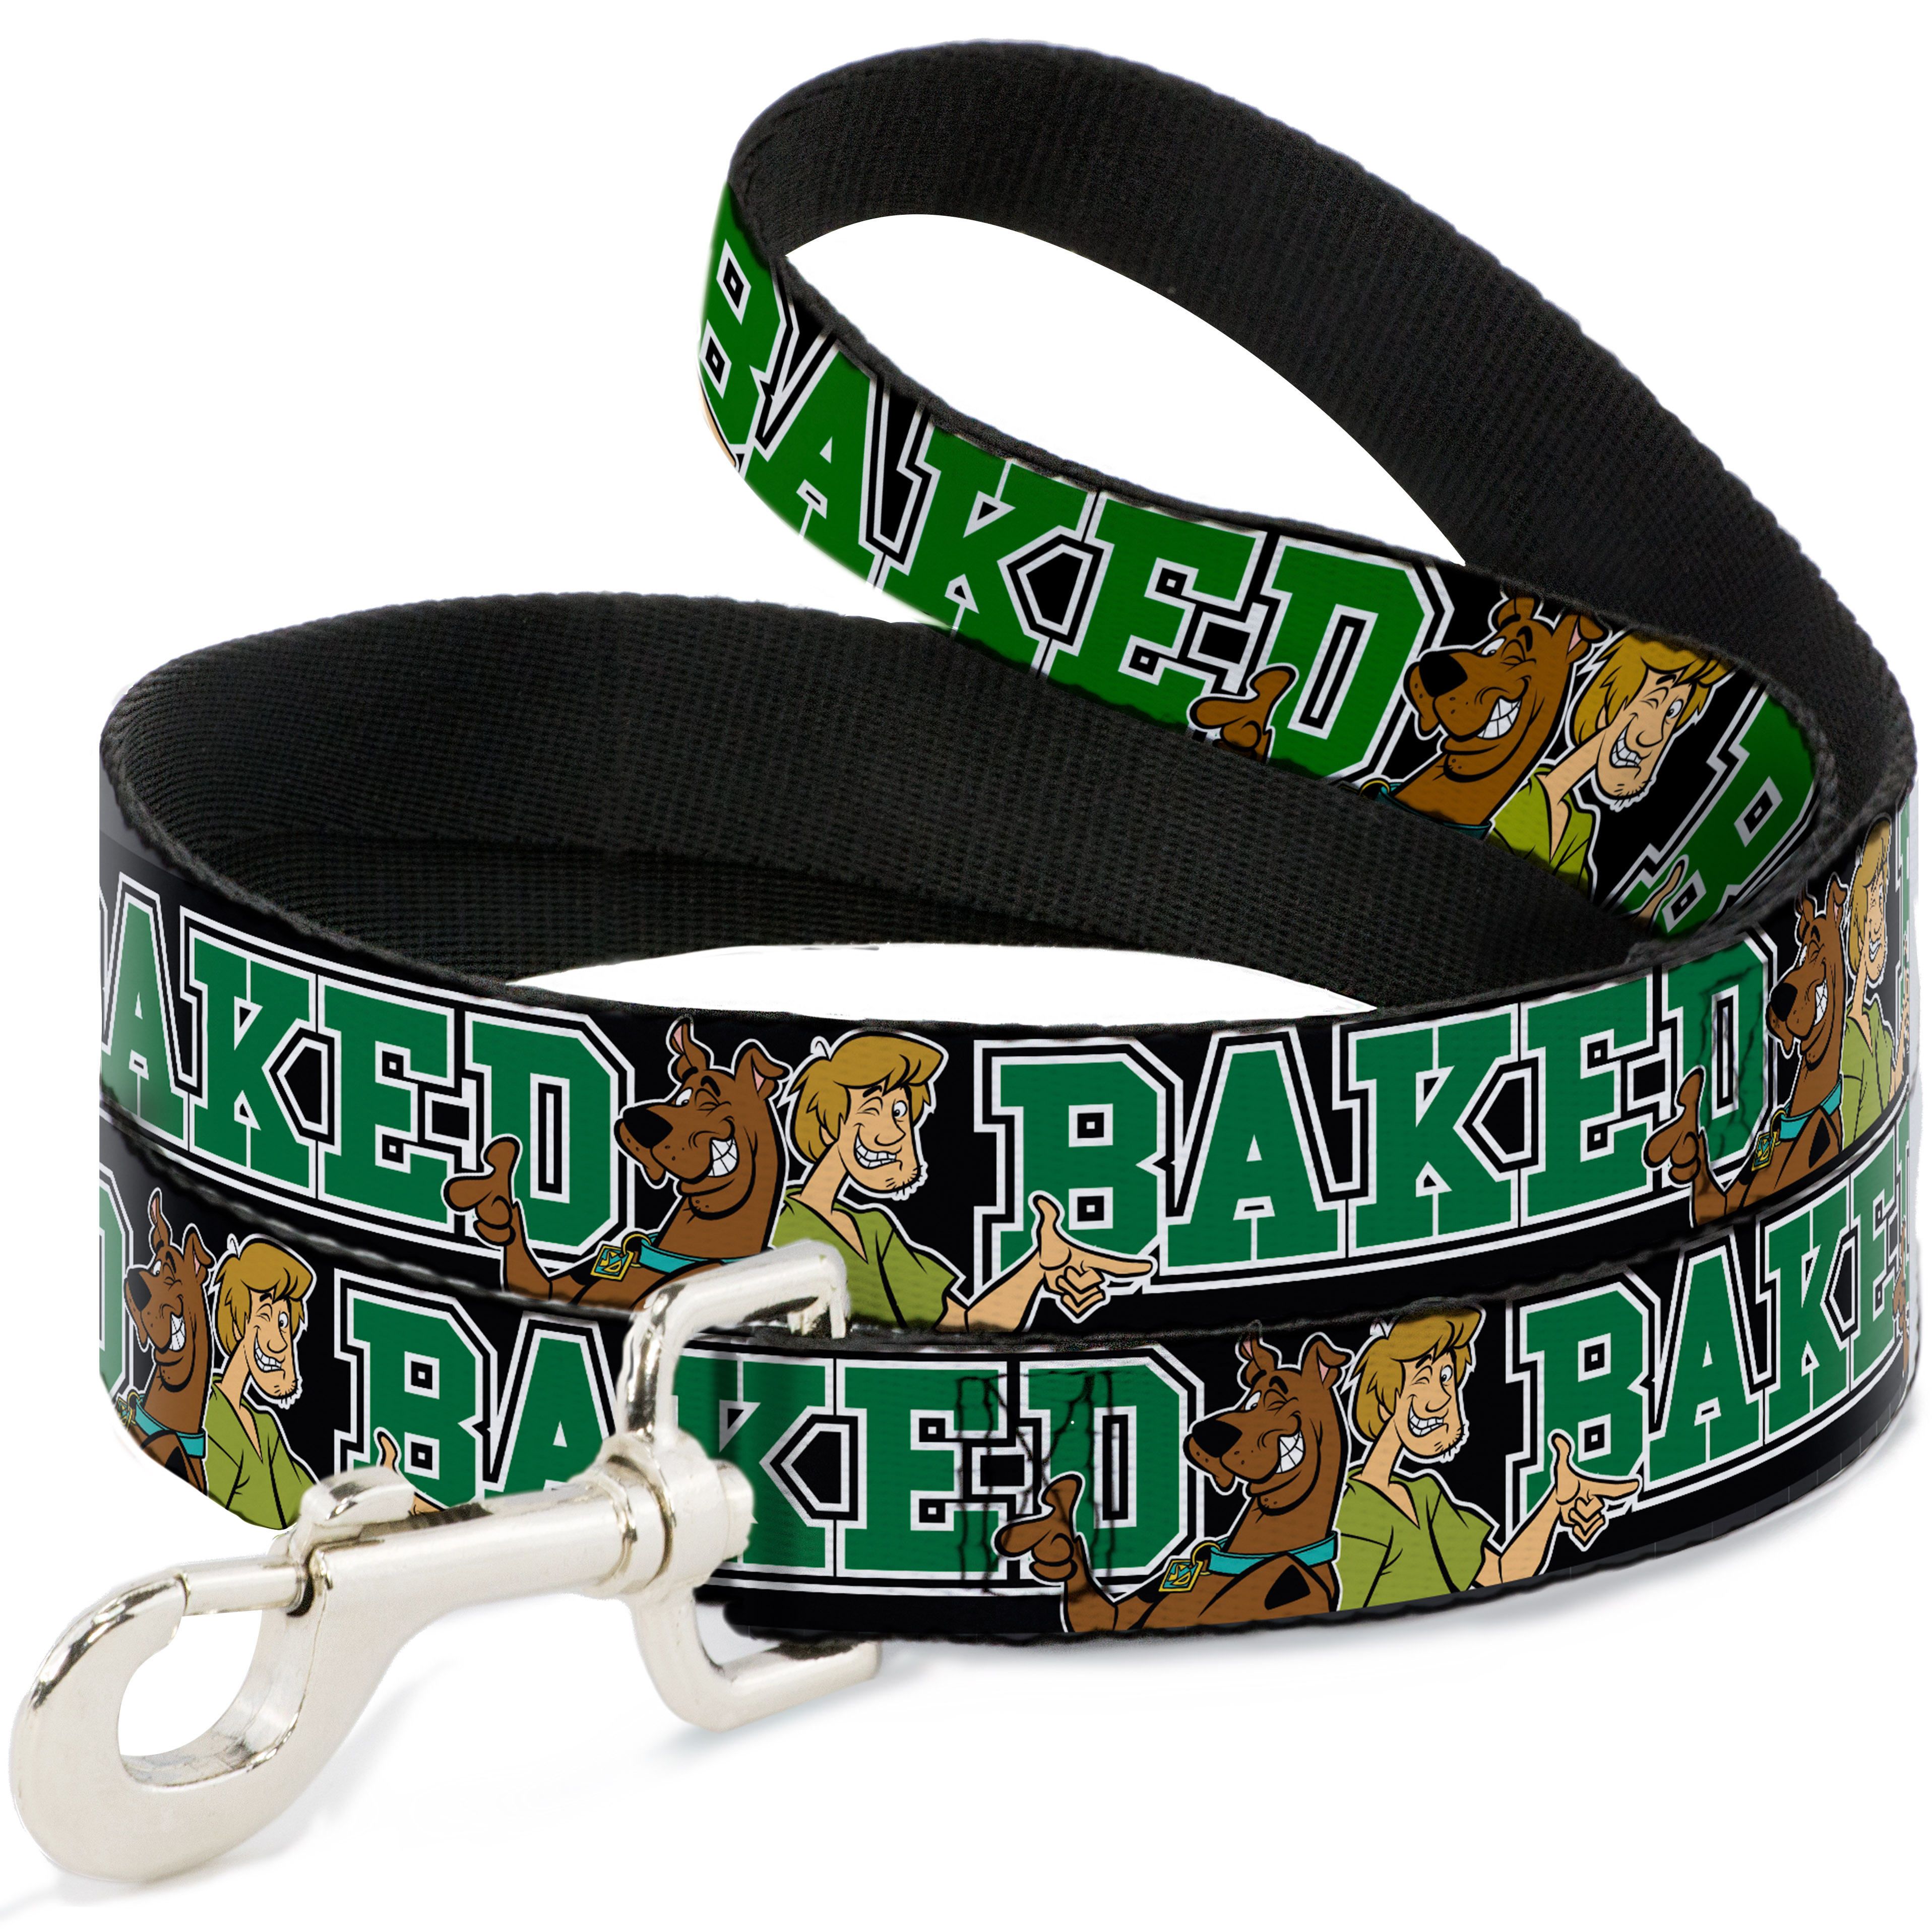 Scooby Doo Comedy Cartoon Series TV Show Baked Scooby Snacks Pet Leash